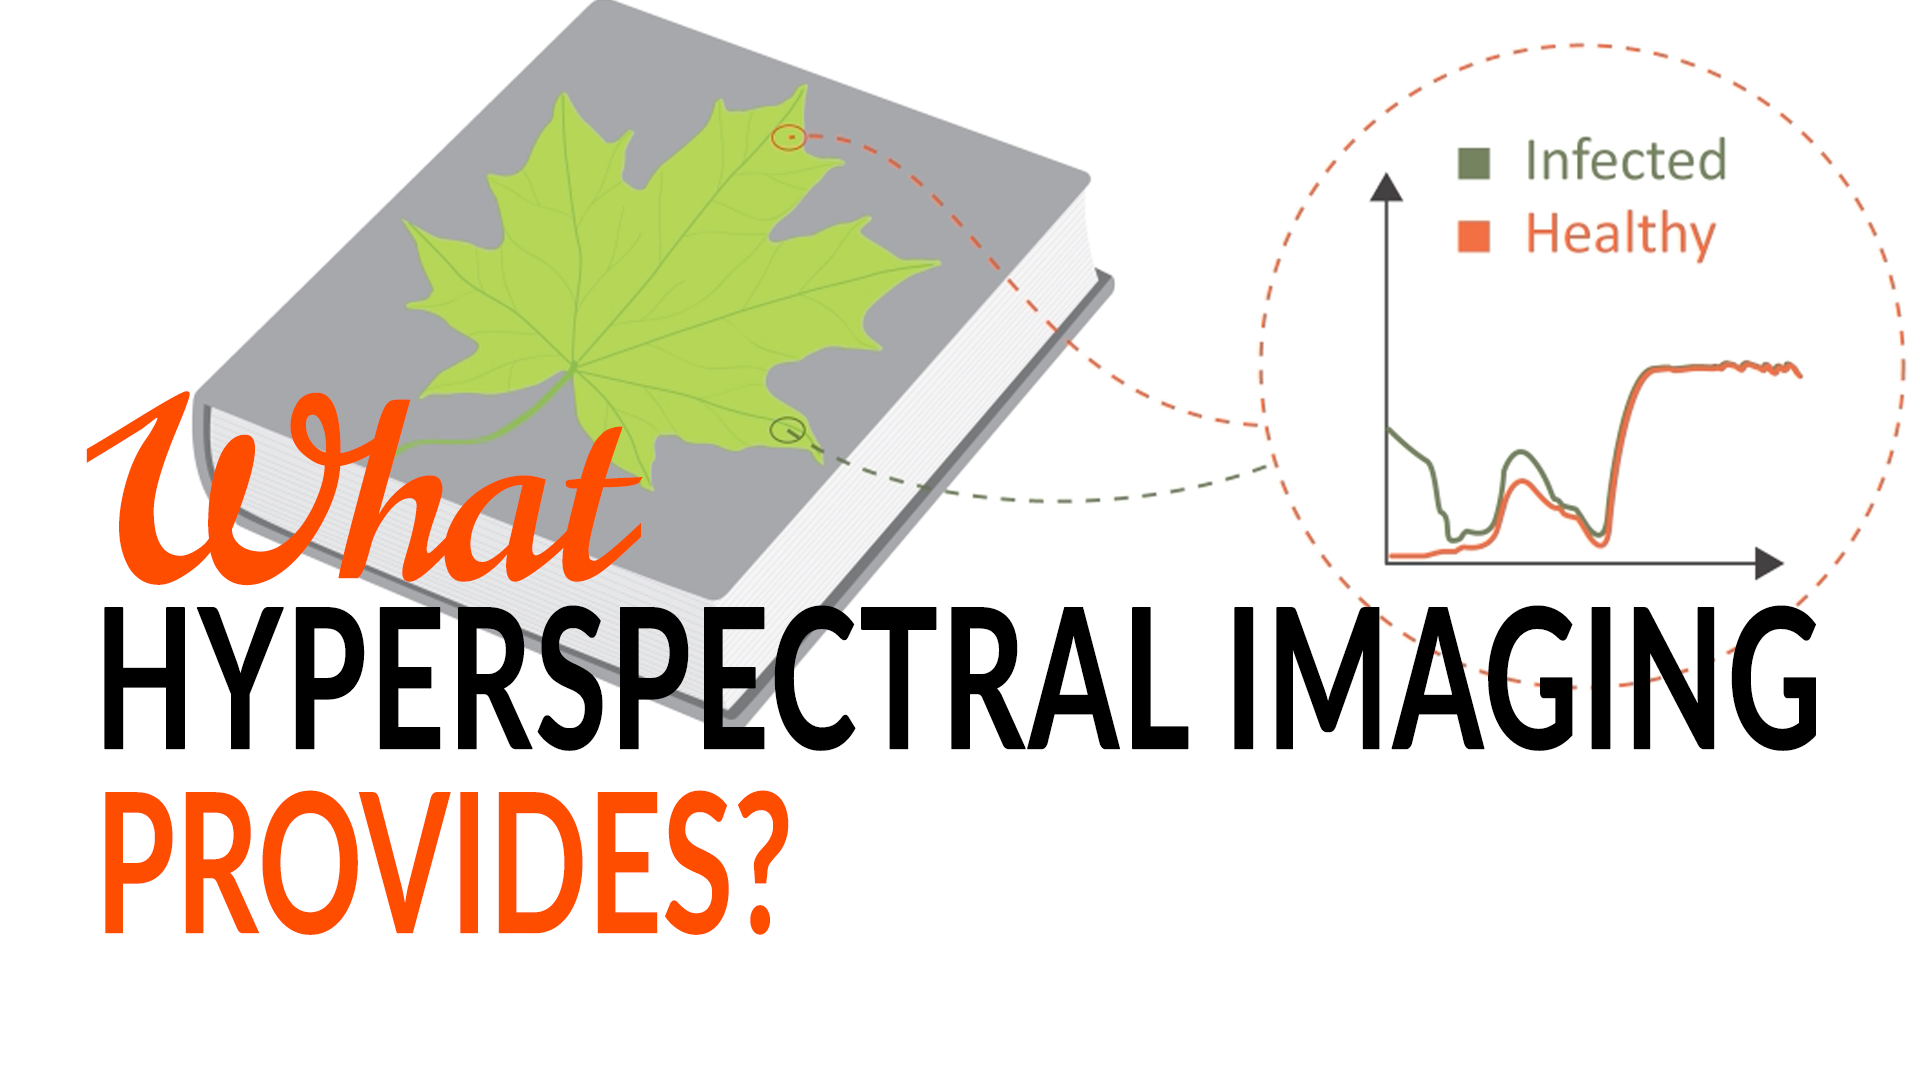 What hyperspectral imaging provides?